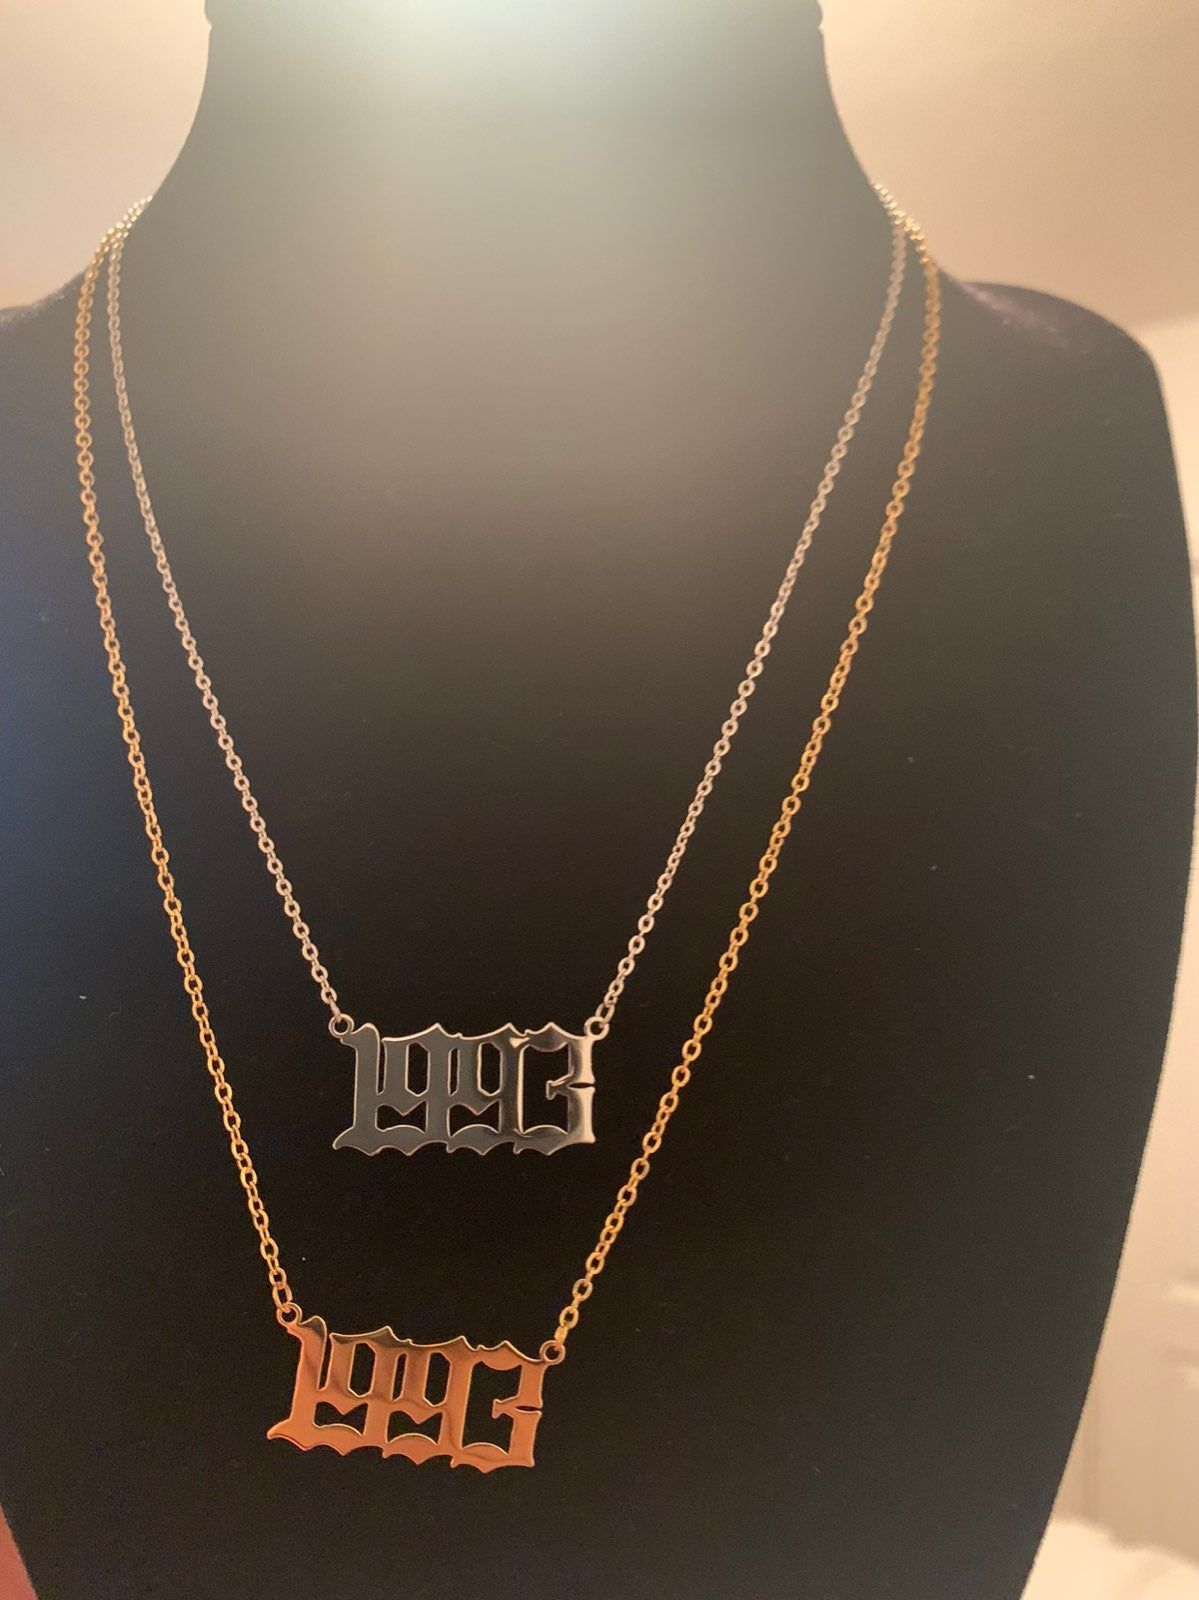 Pin On Customized Personalized Necklaces